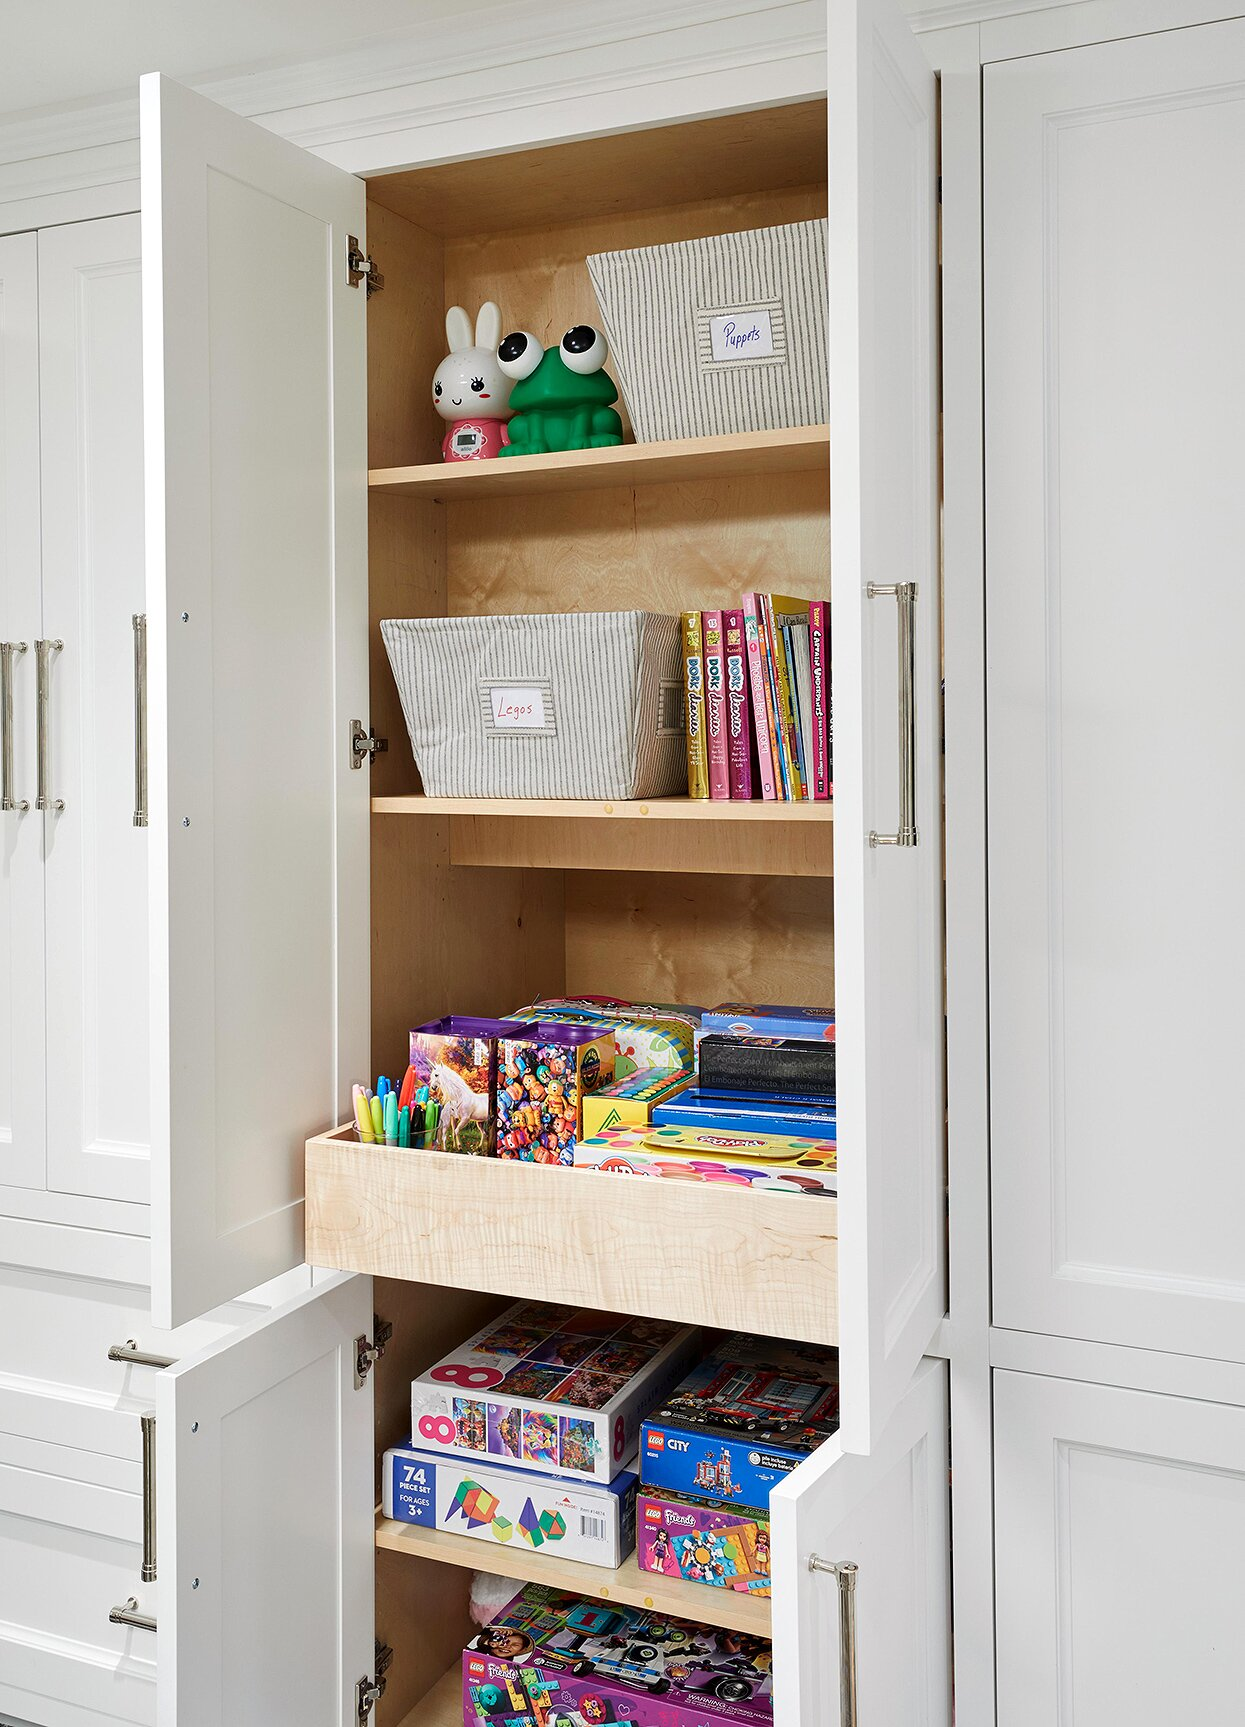 games and toys in cabinets and pull-out shelf